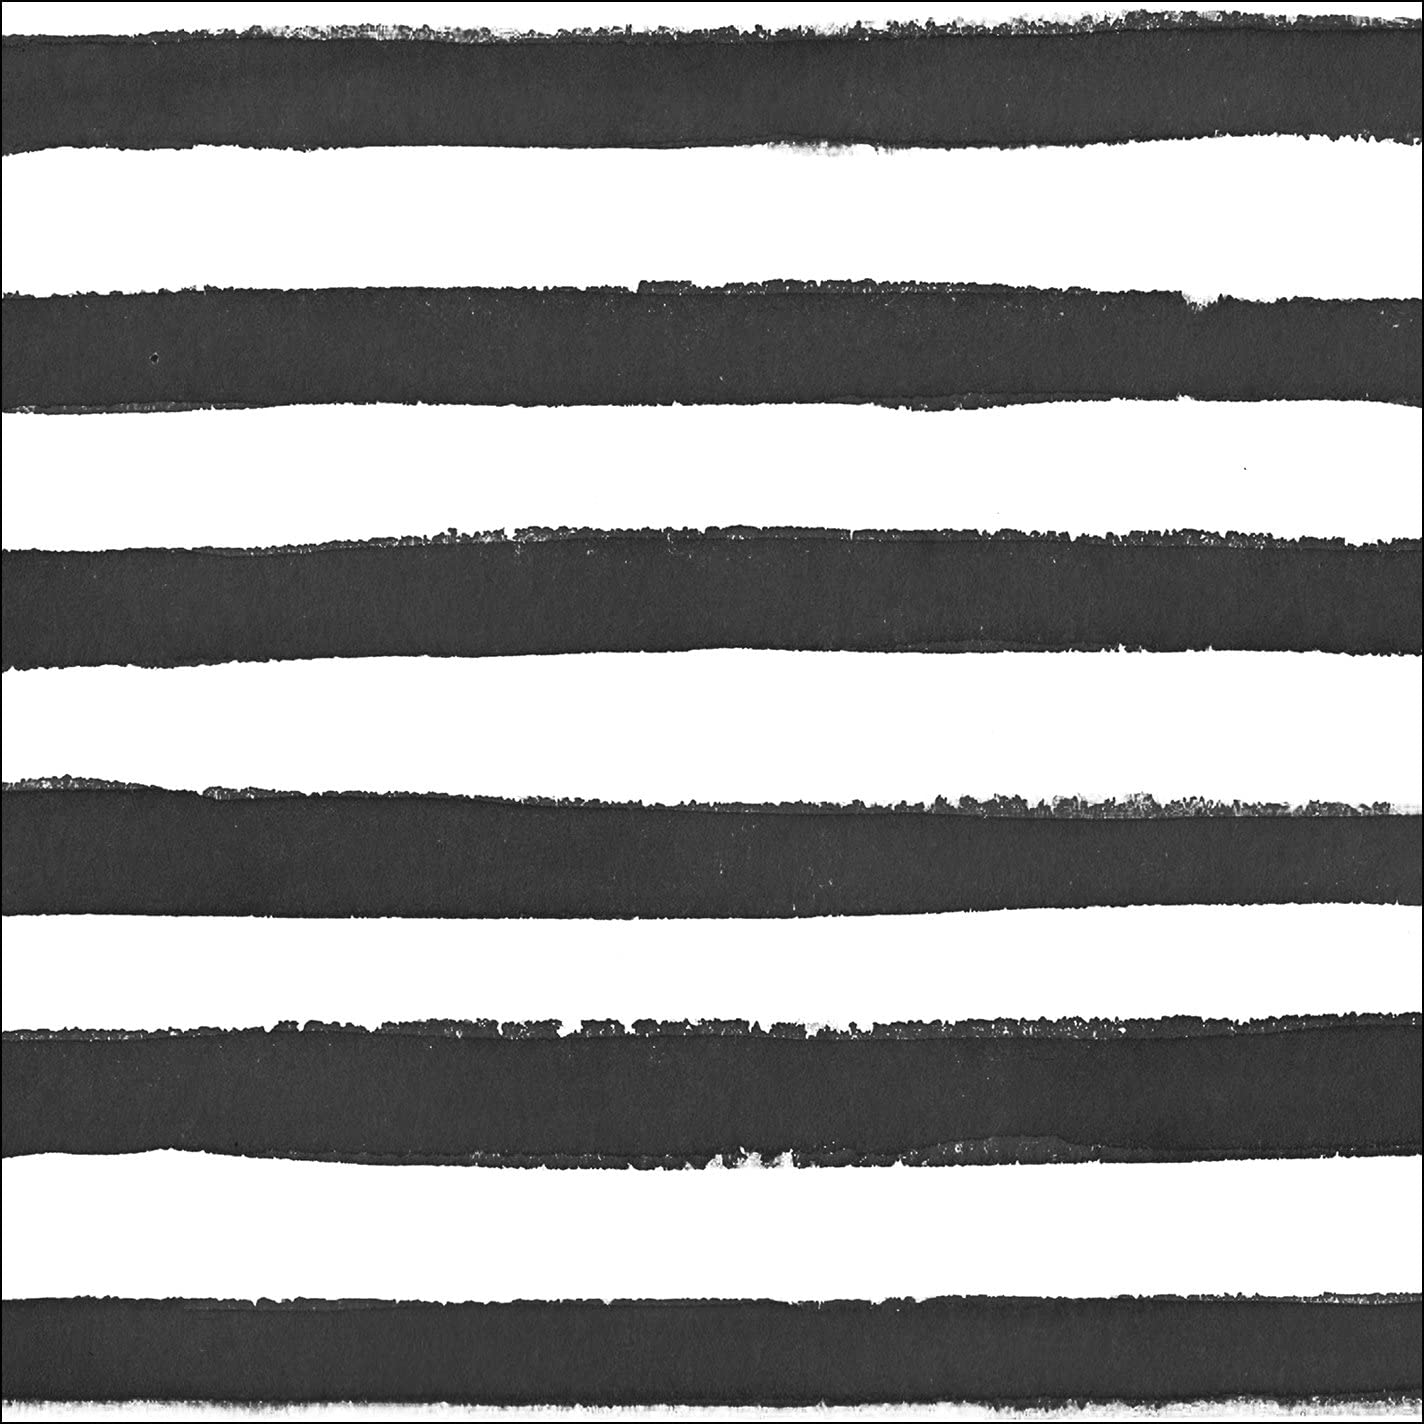 Creative Converting 24 Count Premium Patterned Beverage Napkins, Dotted and Striped, Licorice